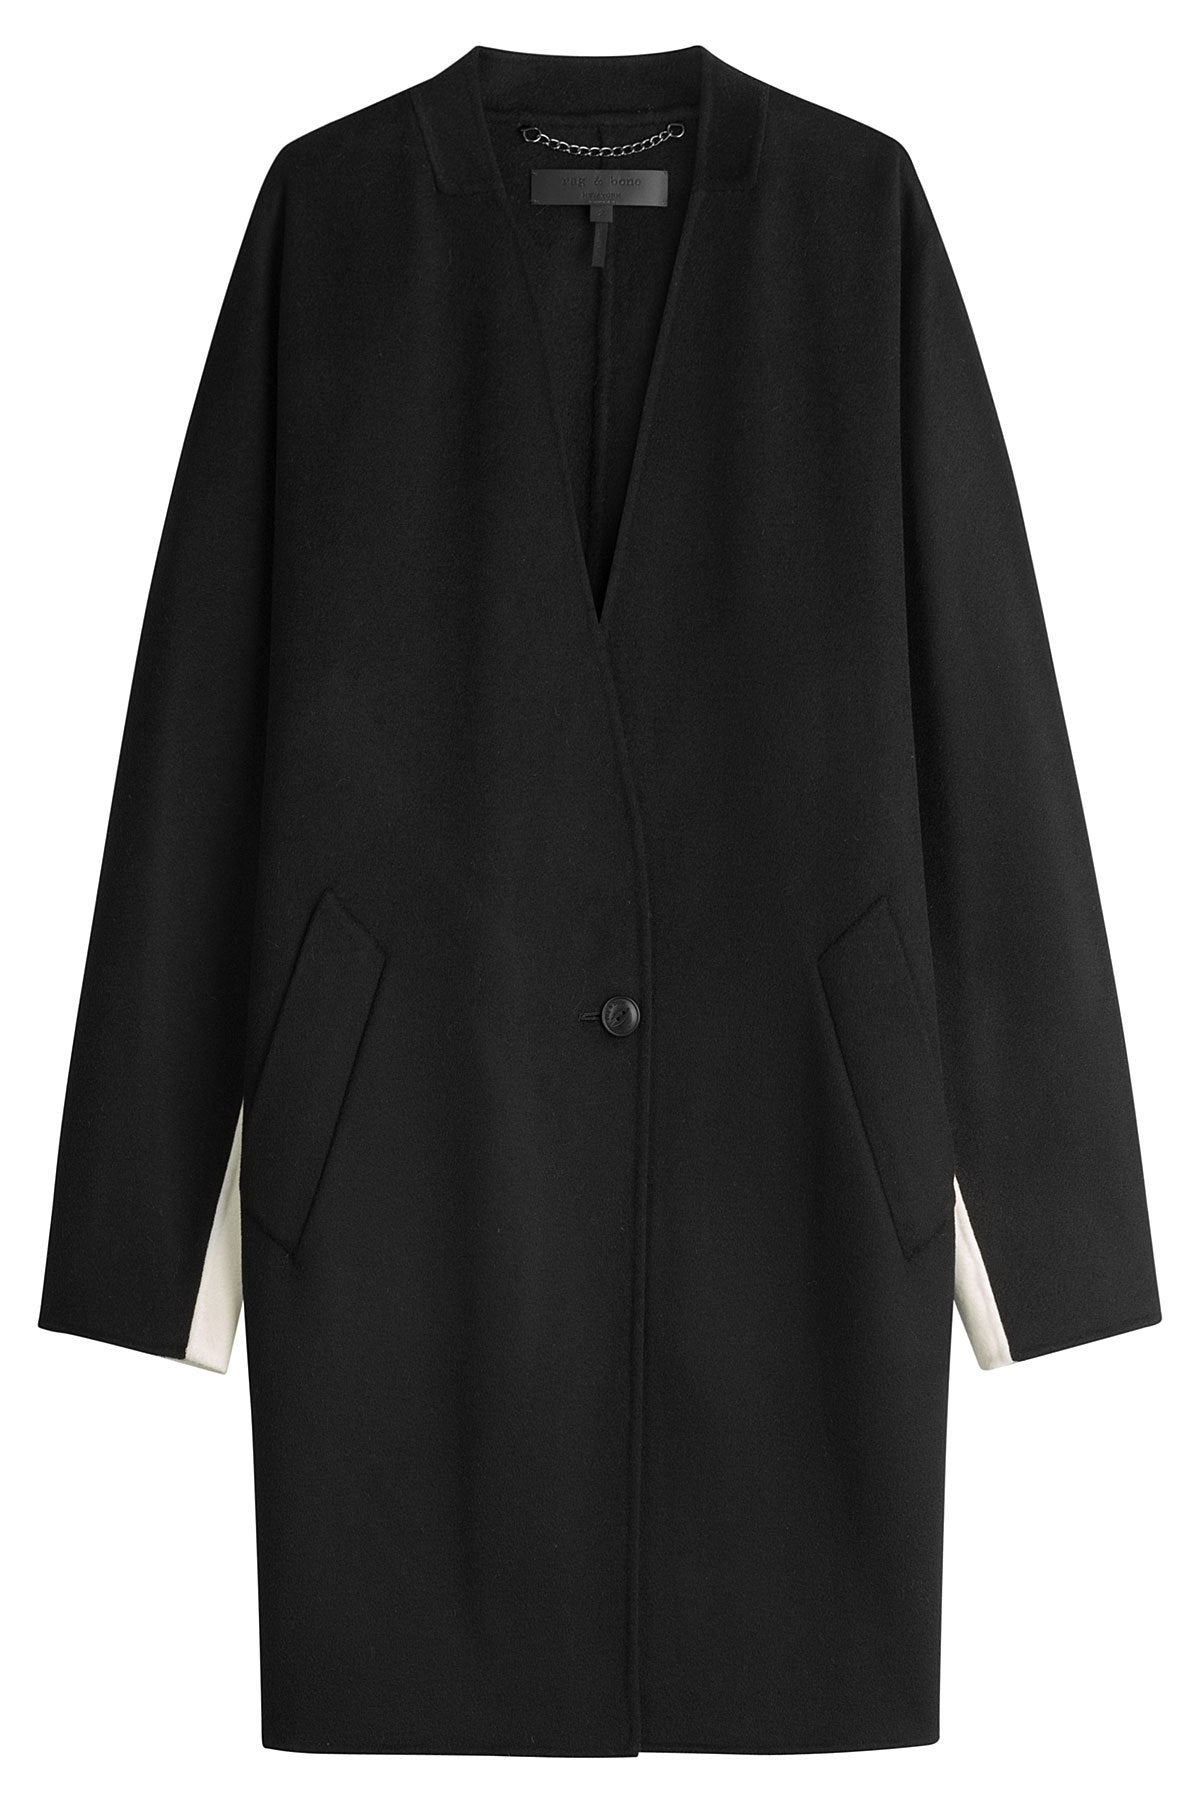 rag & bone - Black and white stripe colour-blocked wool coat